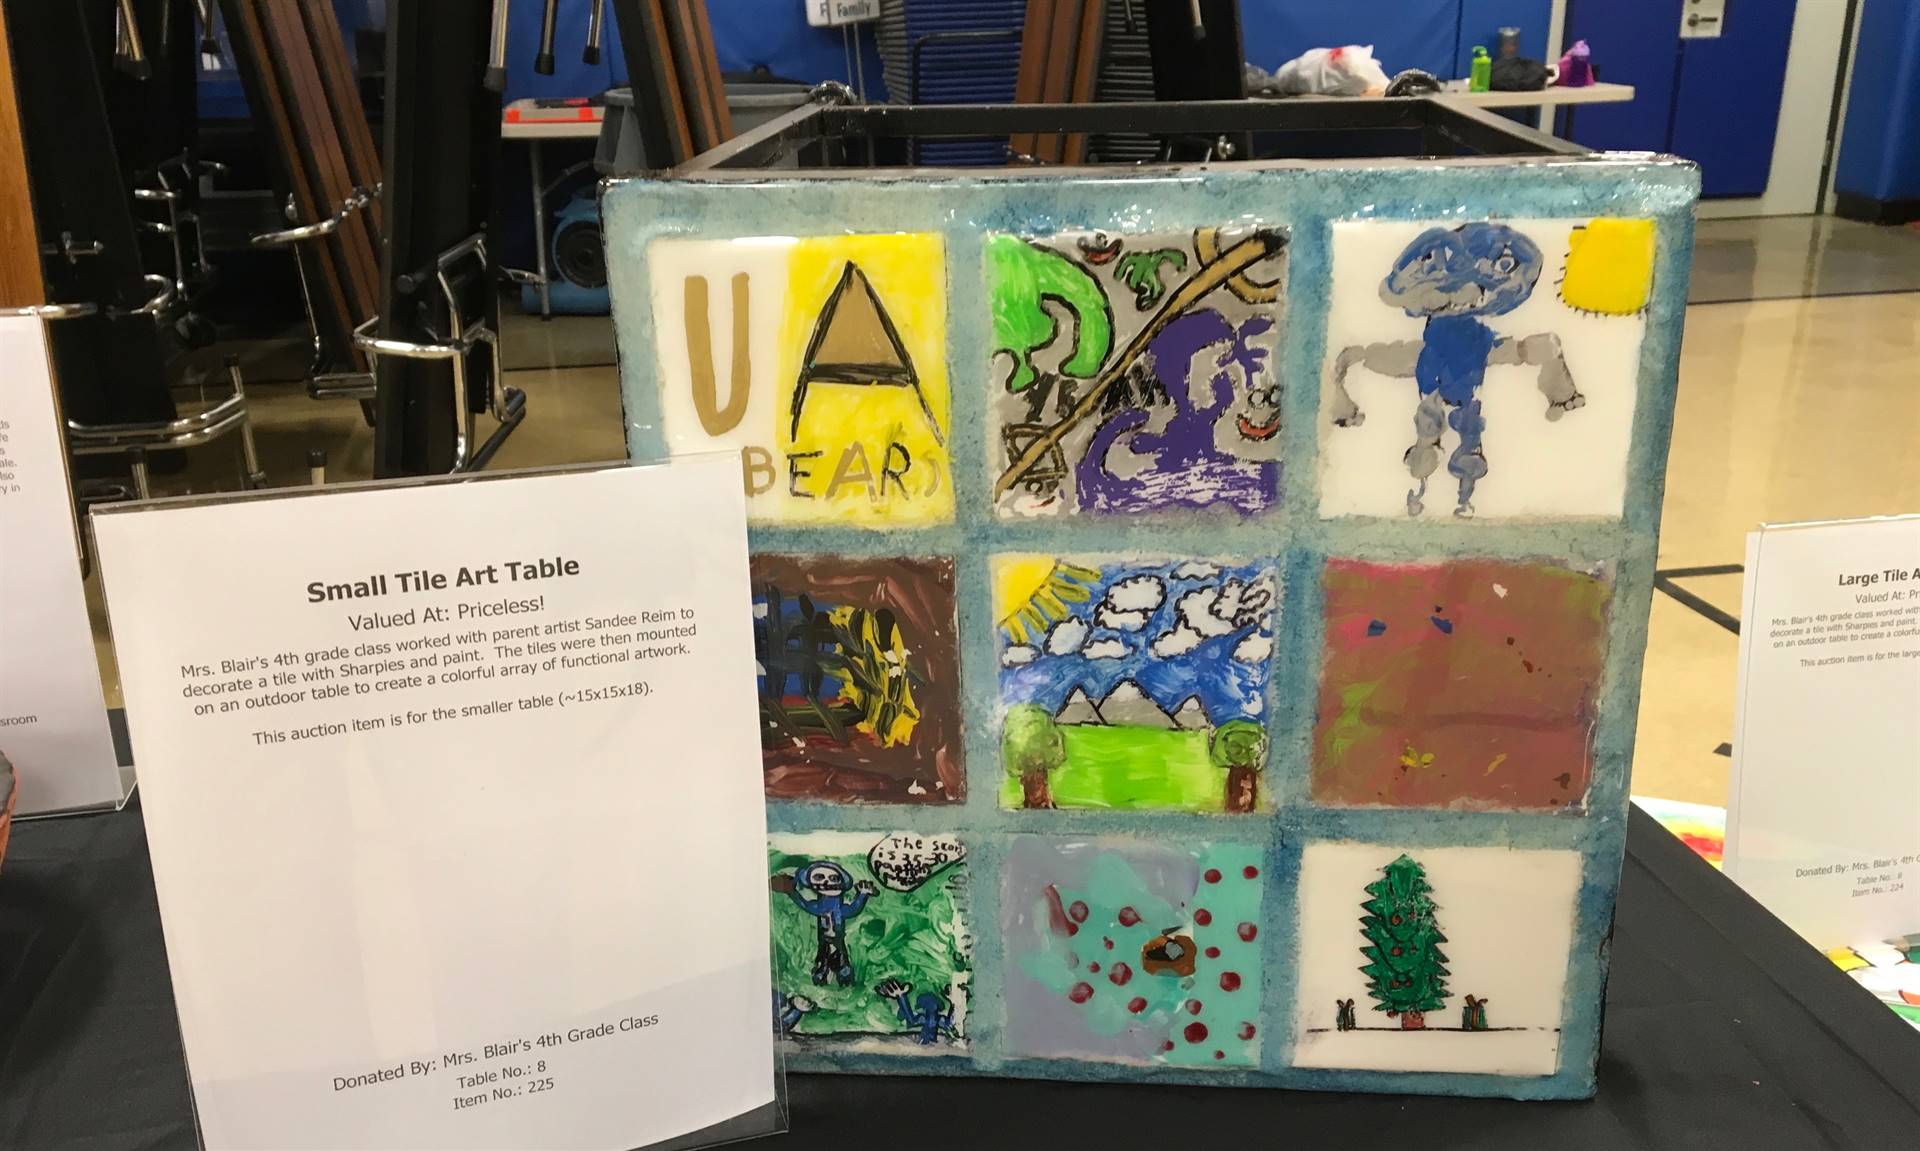 Informal Affair Art Project: Small Tile Art Table